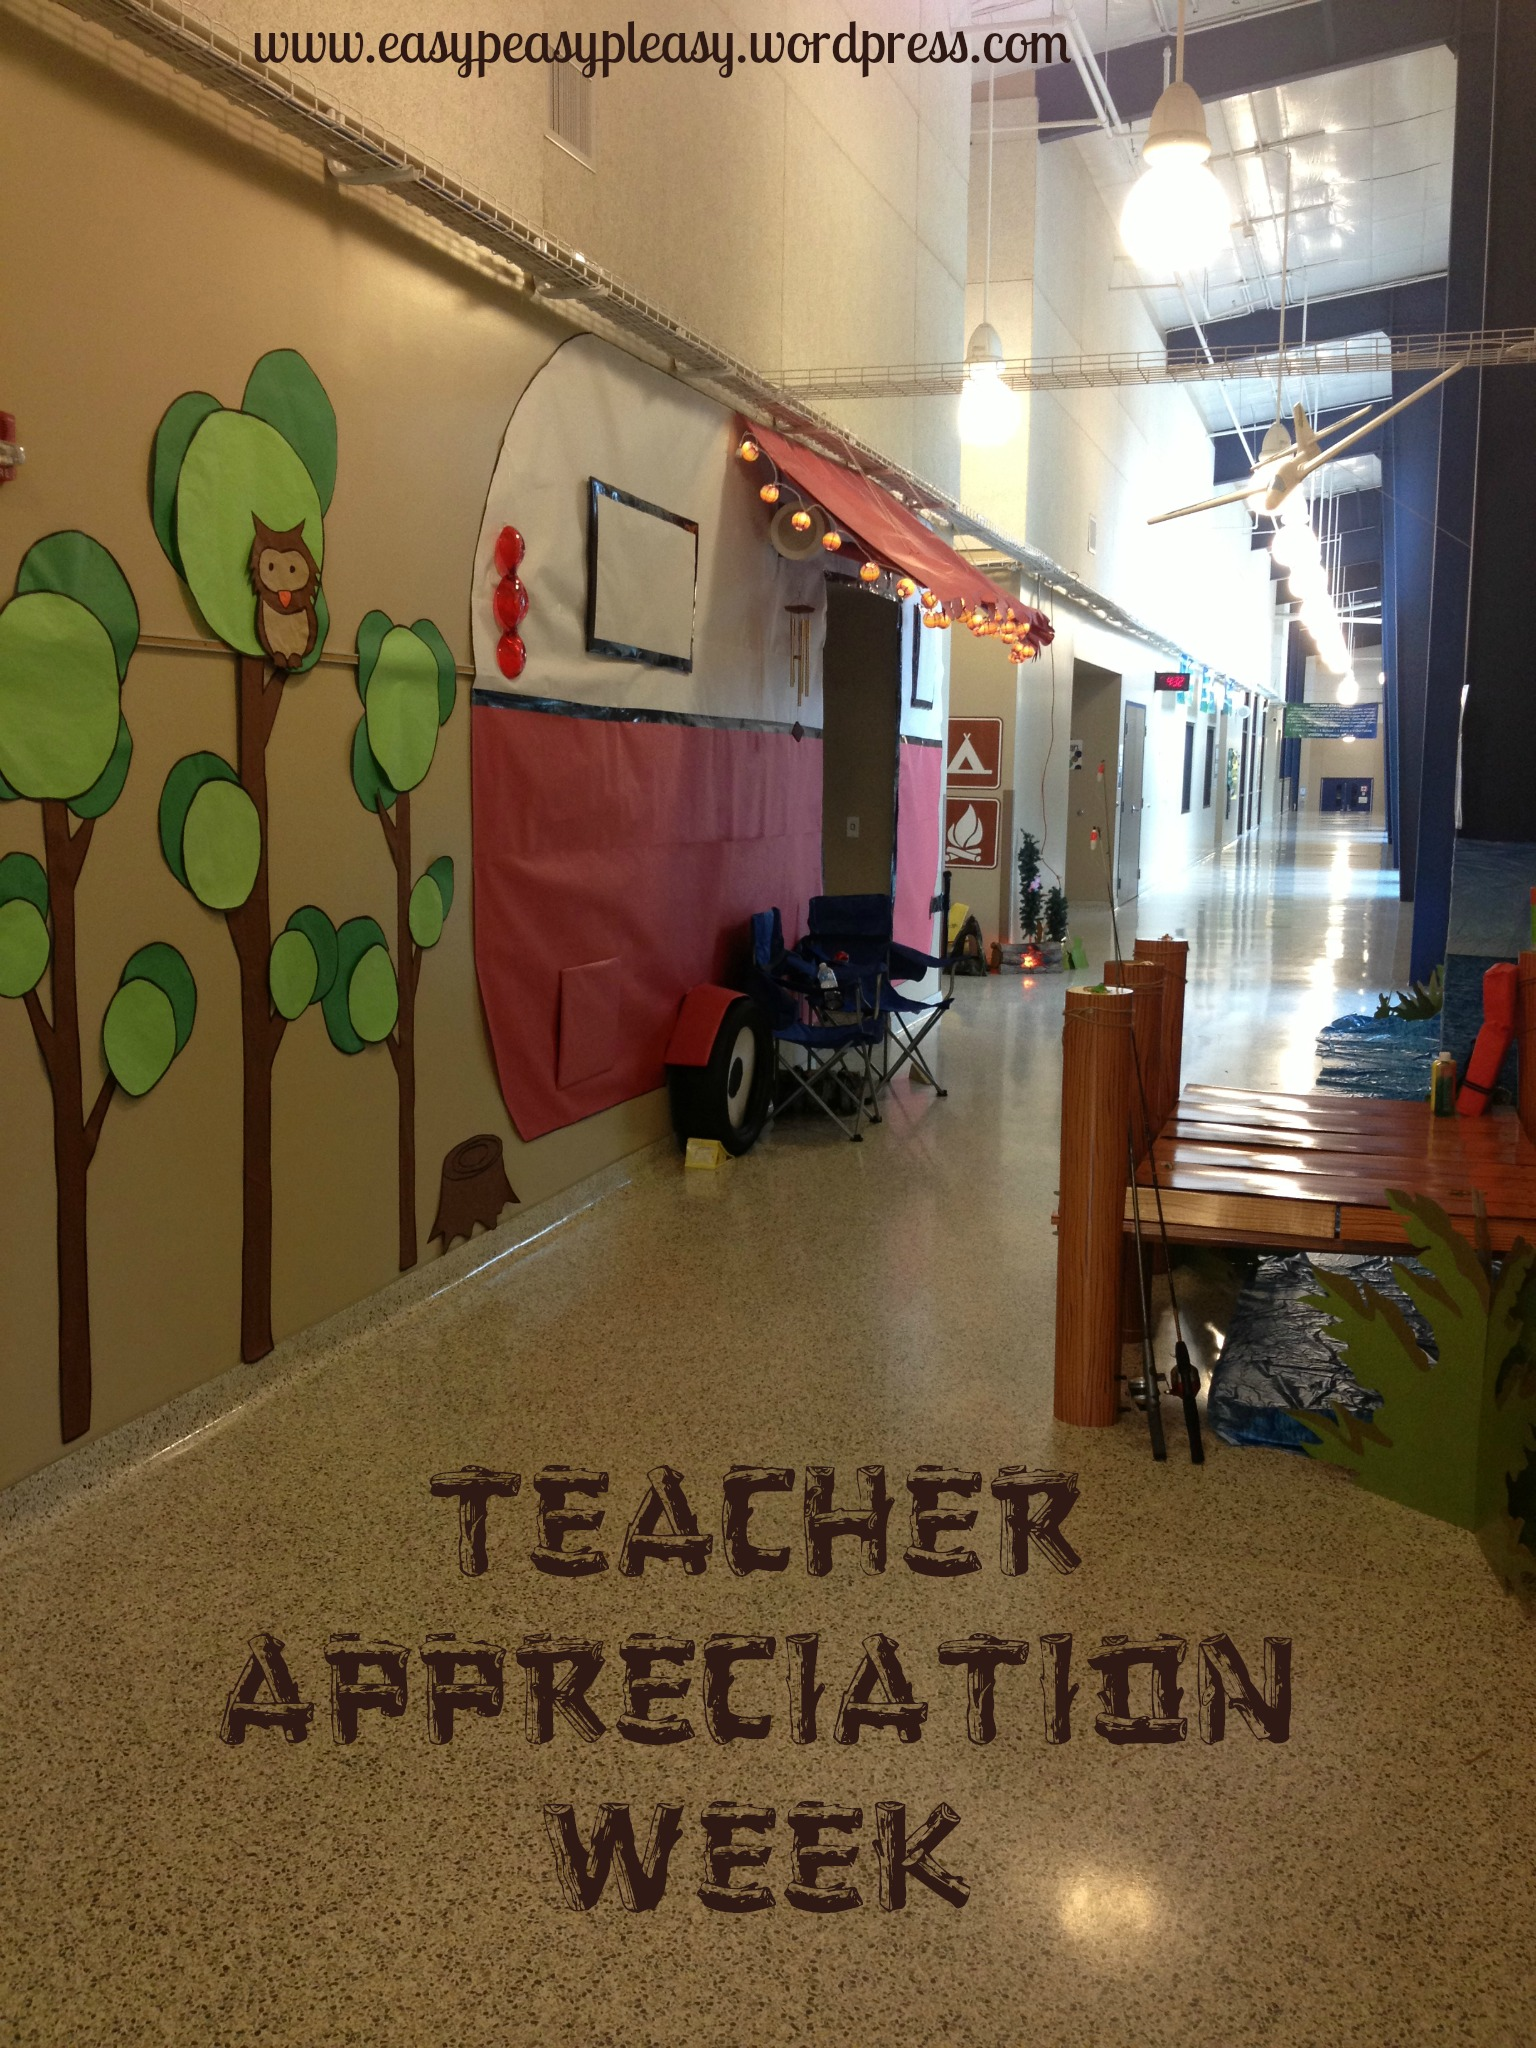 Teacher Appreciation Week Camping Theme with a view of the main hallway